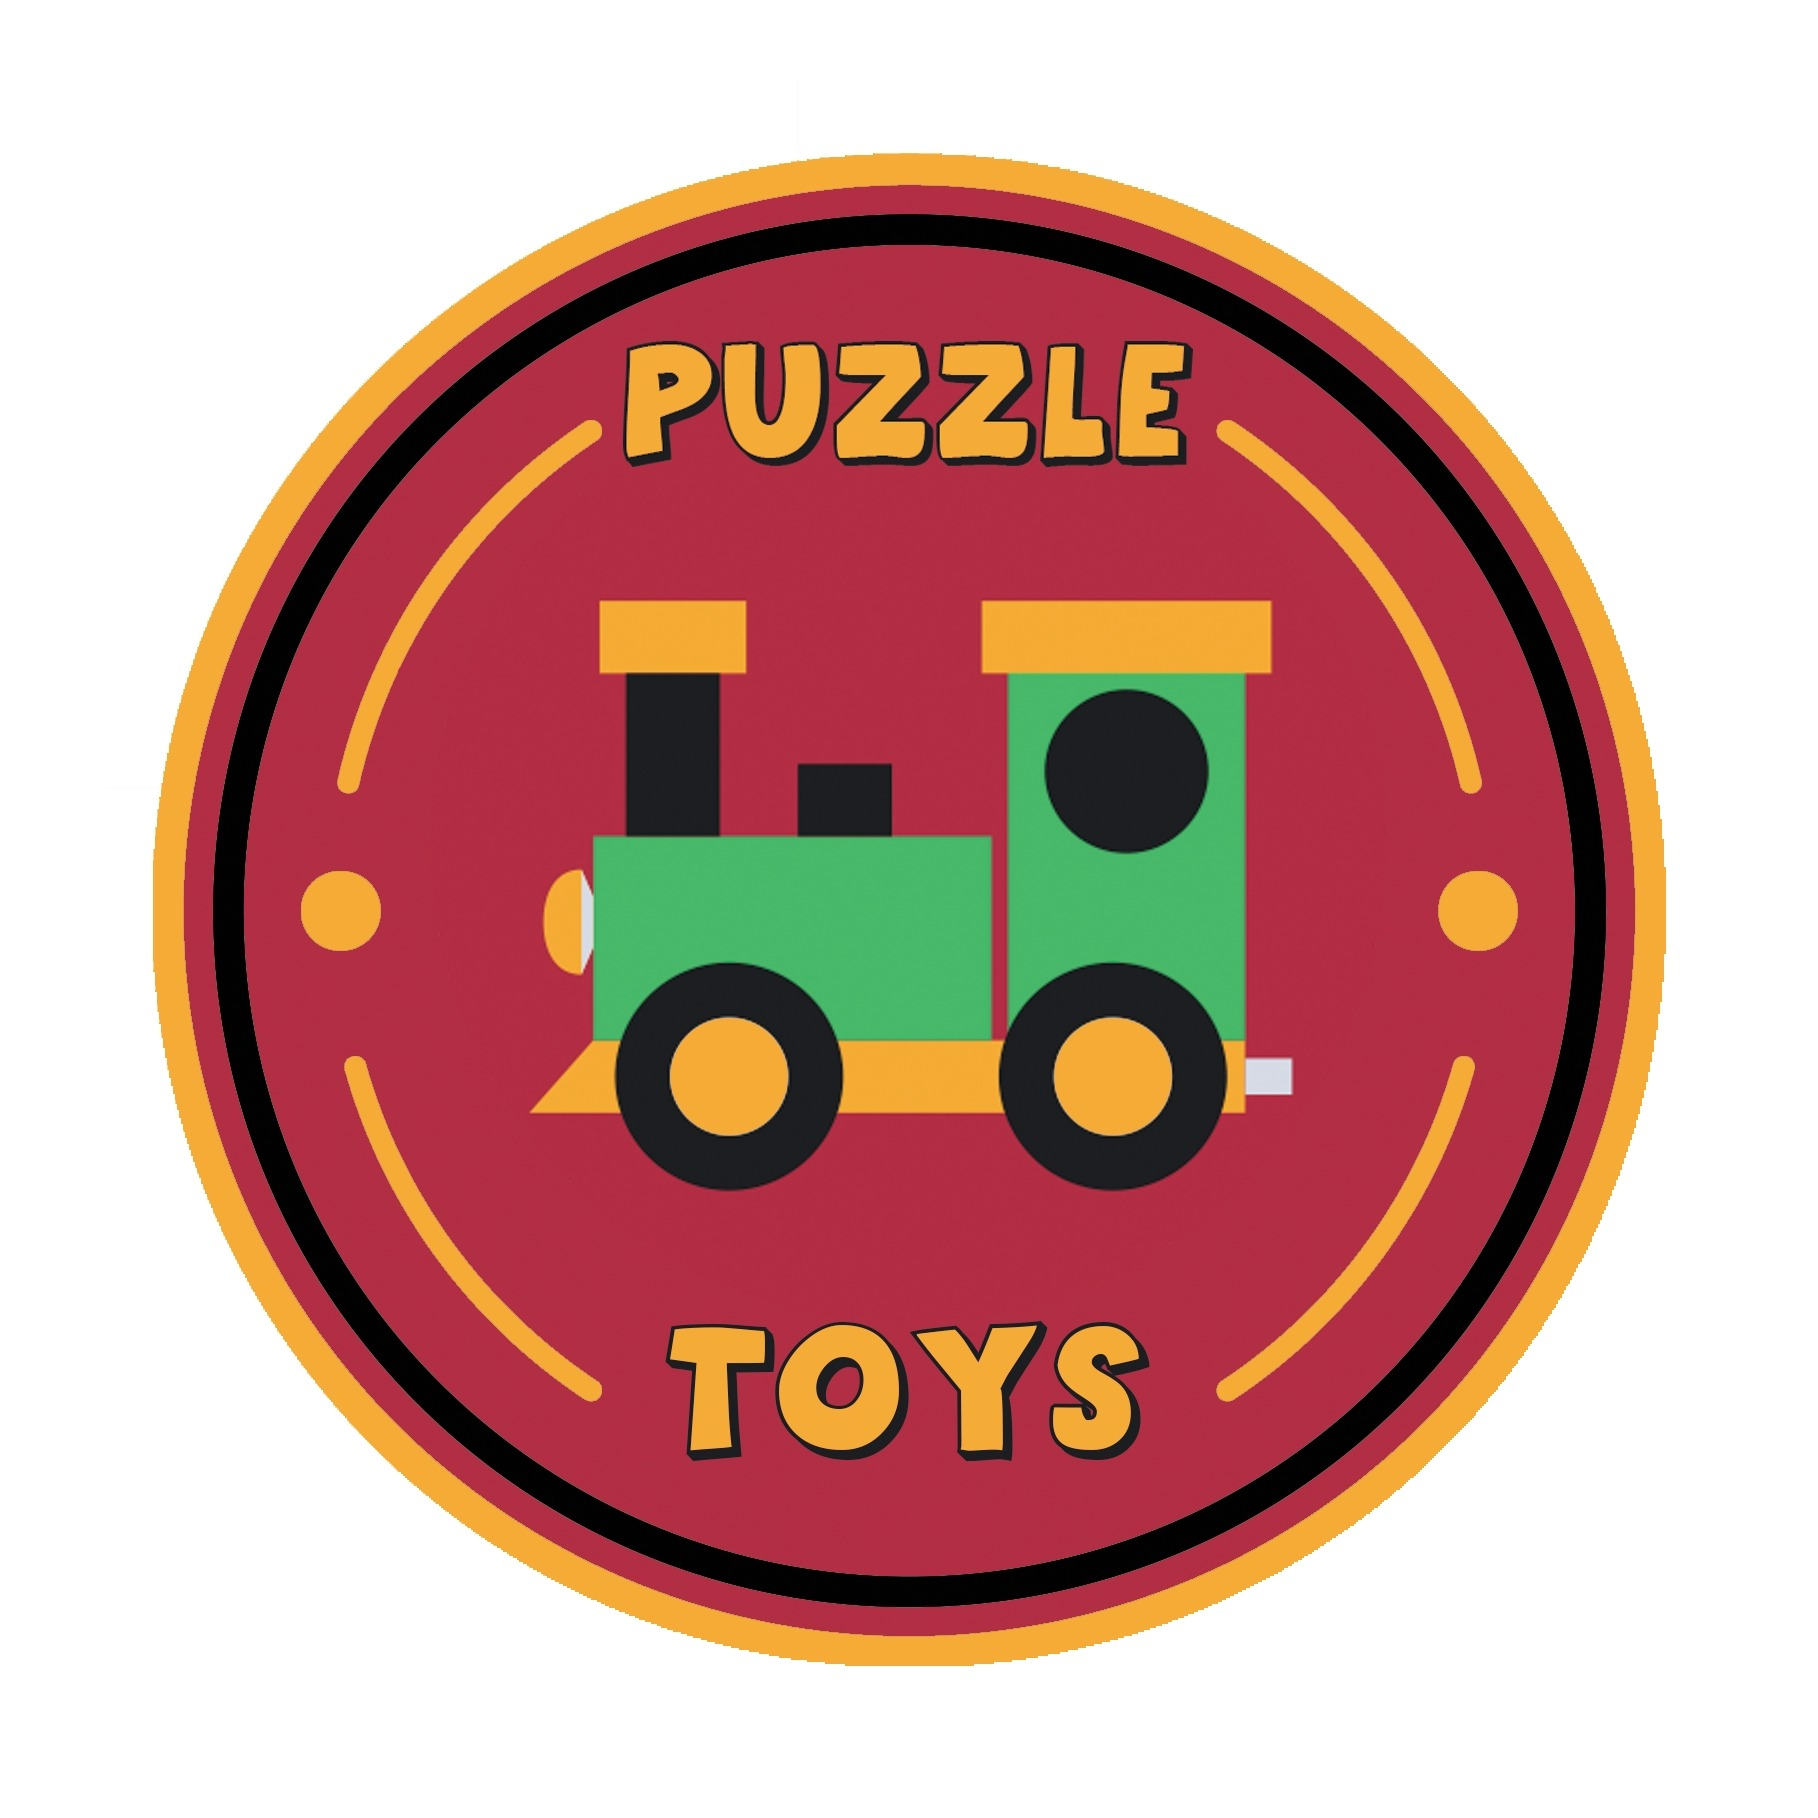 Puzzle Toys coupon code